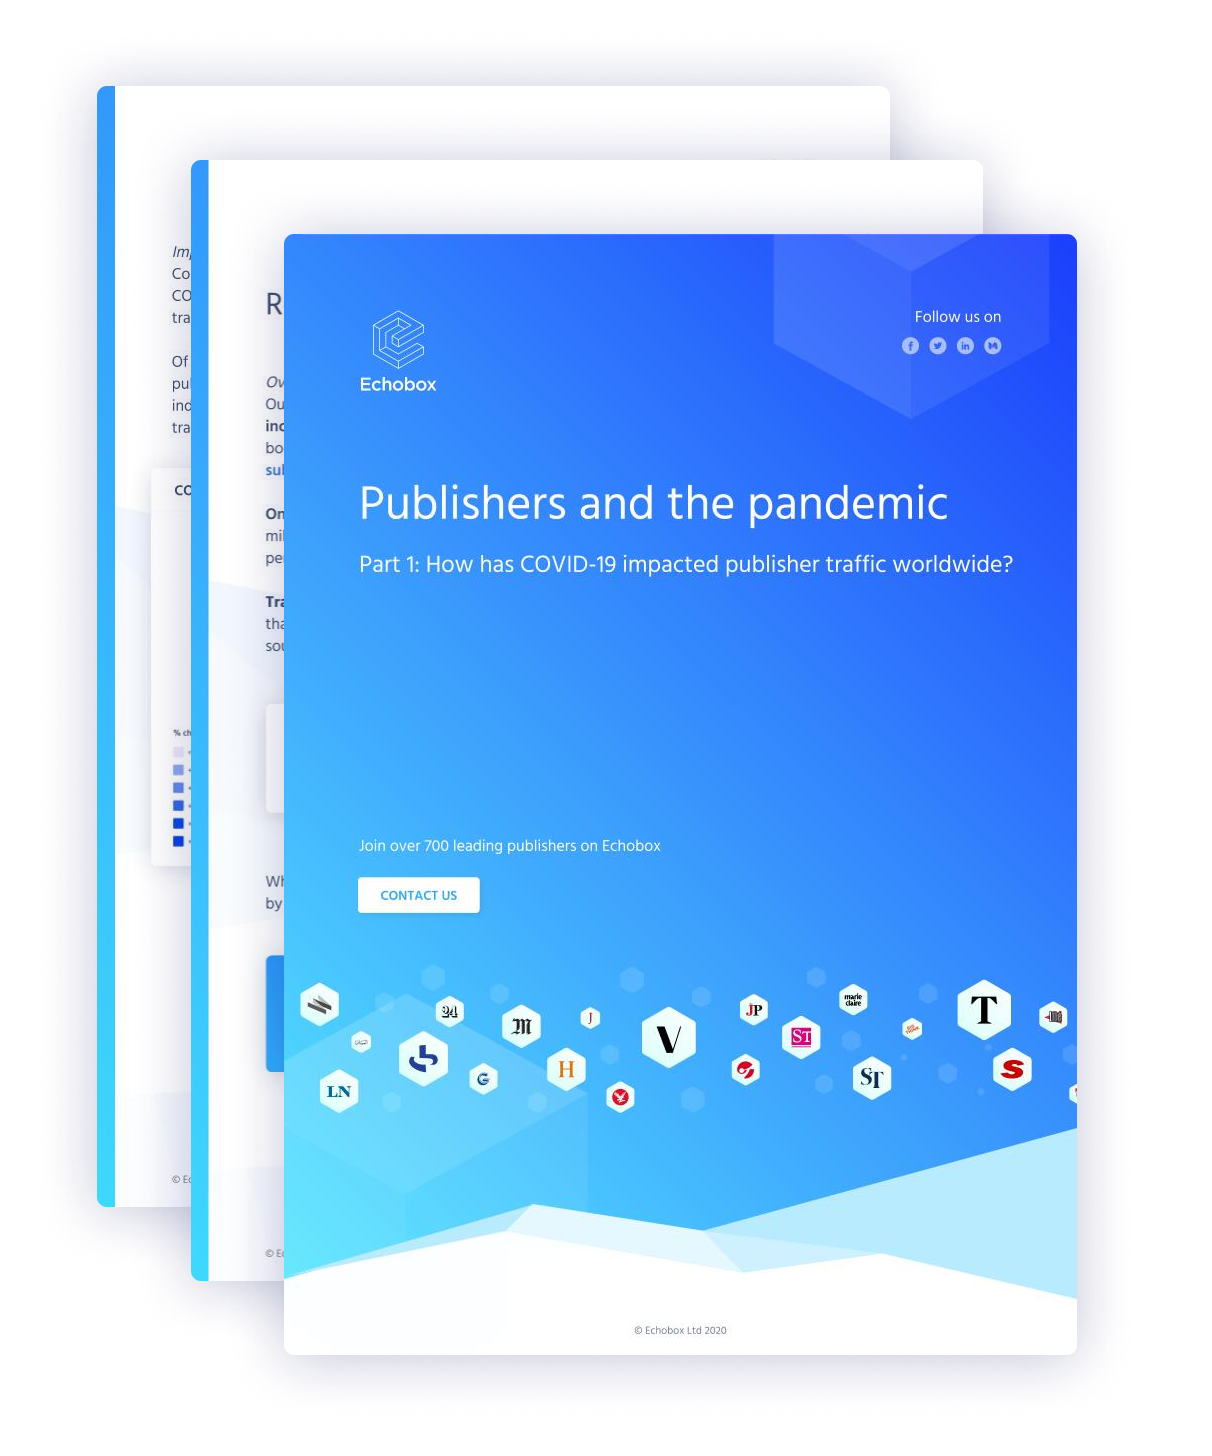 Publishers and the pandemic, part 1